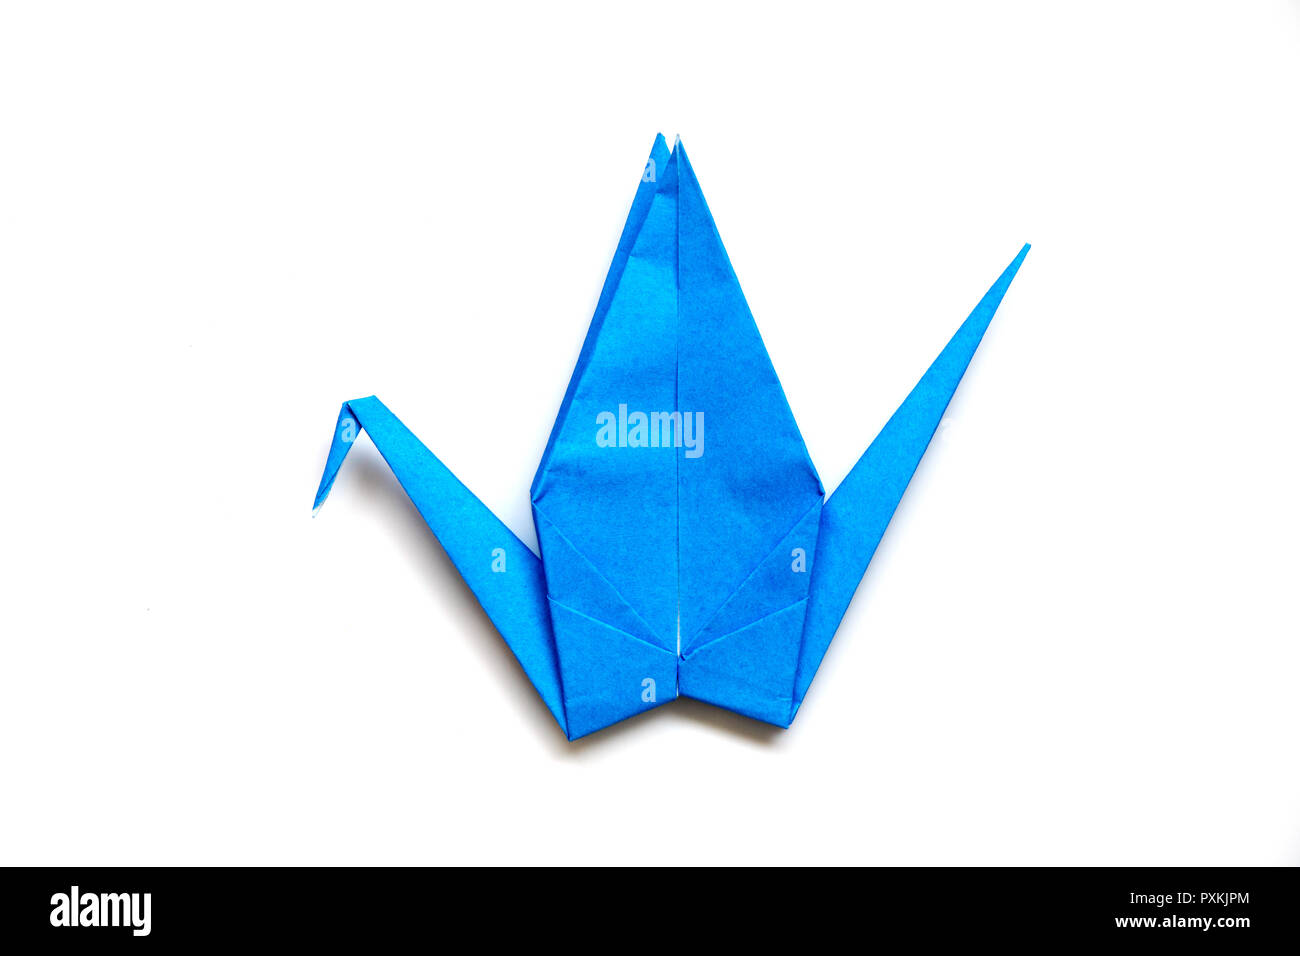 How to Make An Origami Crane for Your Wedding | Martha Stewart ... | 956x1300